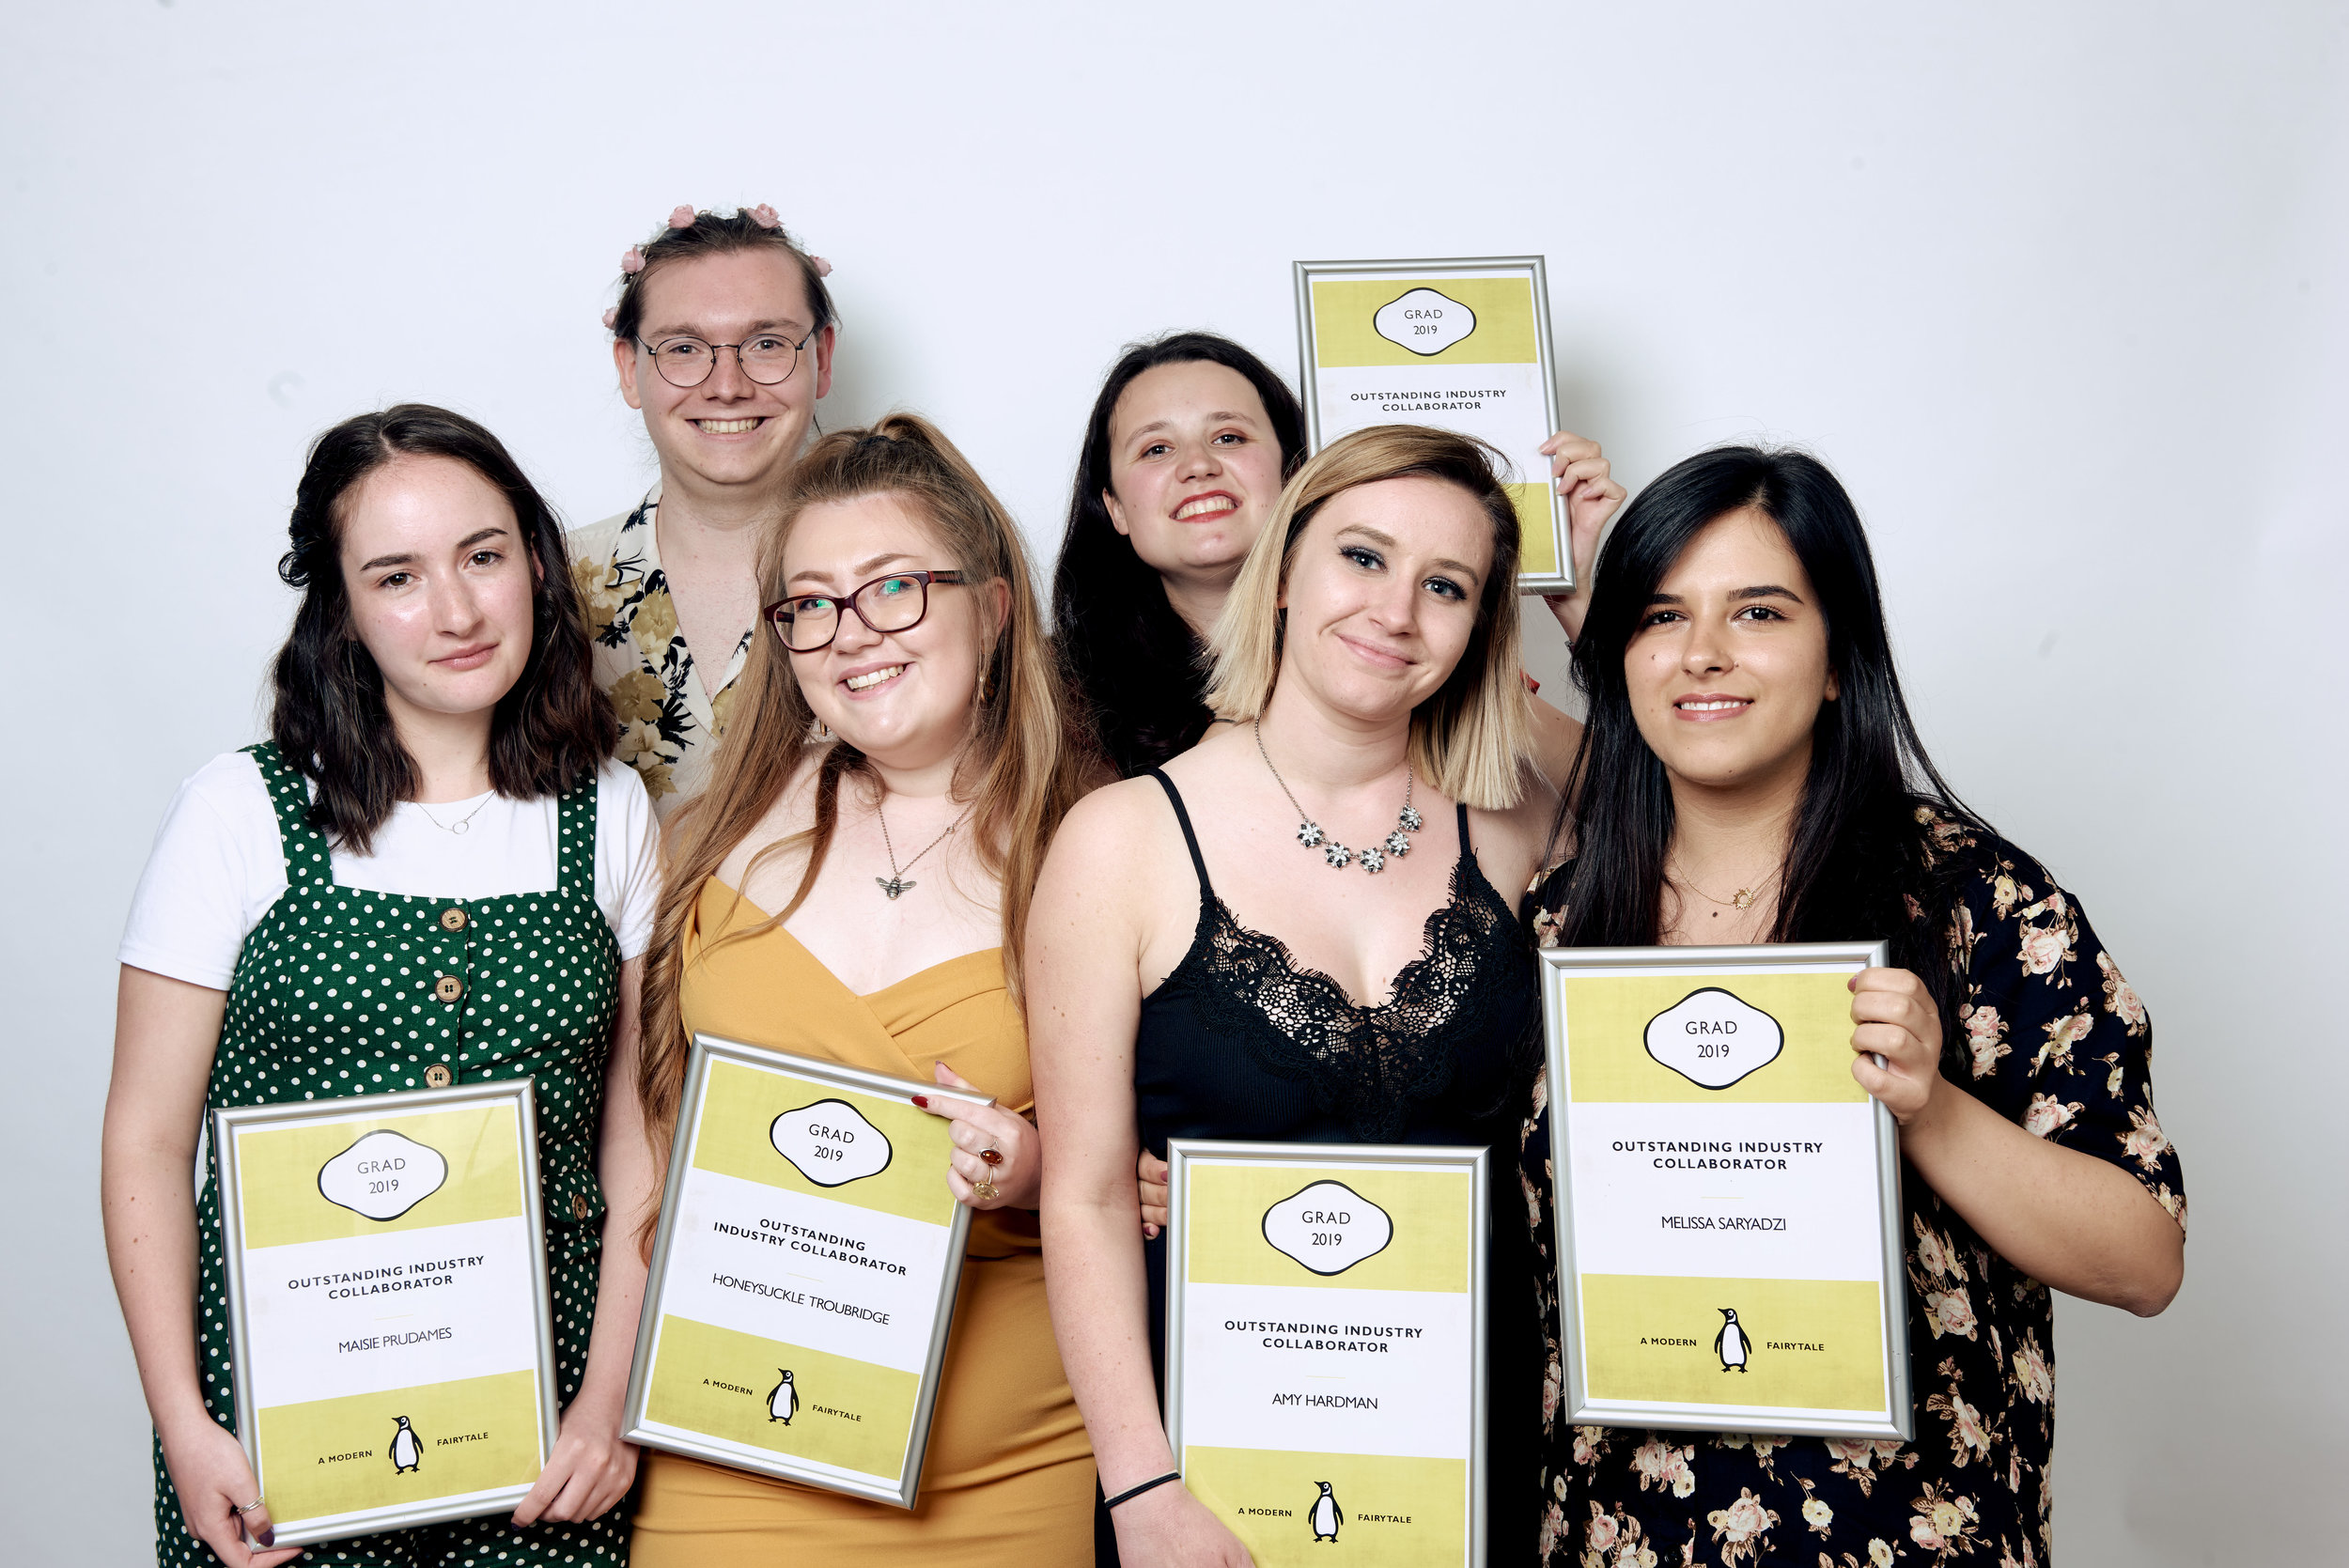 Our own Falwriting Team, including Student Editor Daniella Ferguson-Djaba who couldn't attend the night, also won an award. We're tearfully proud!